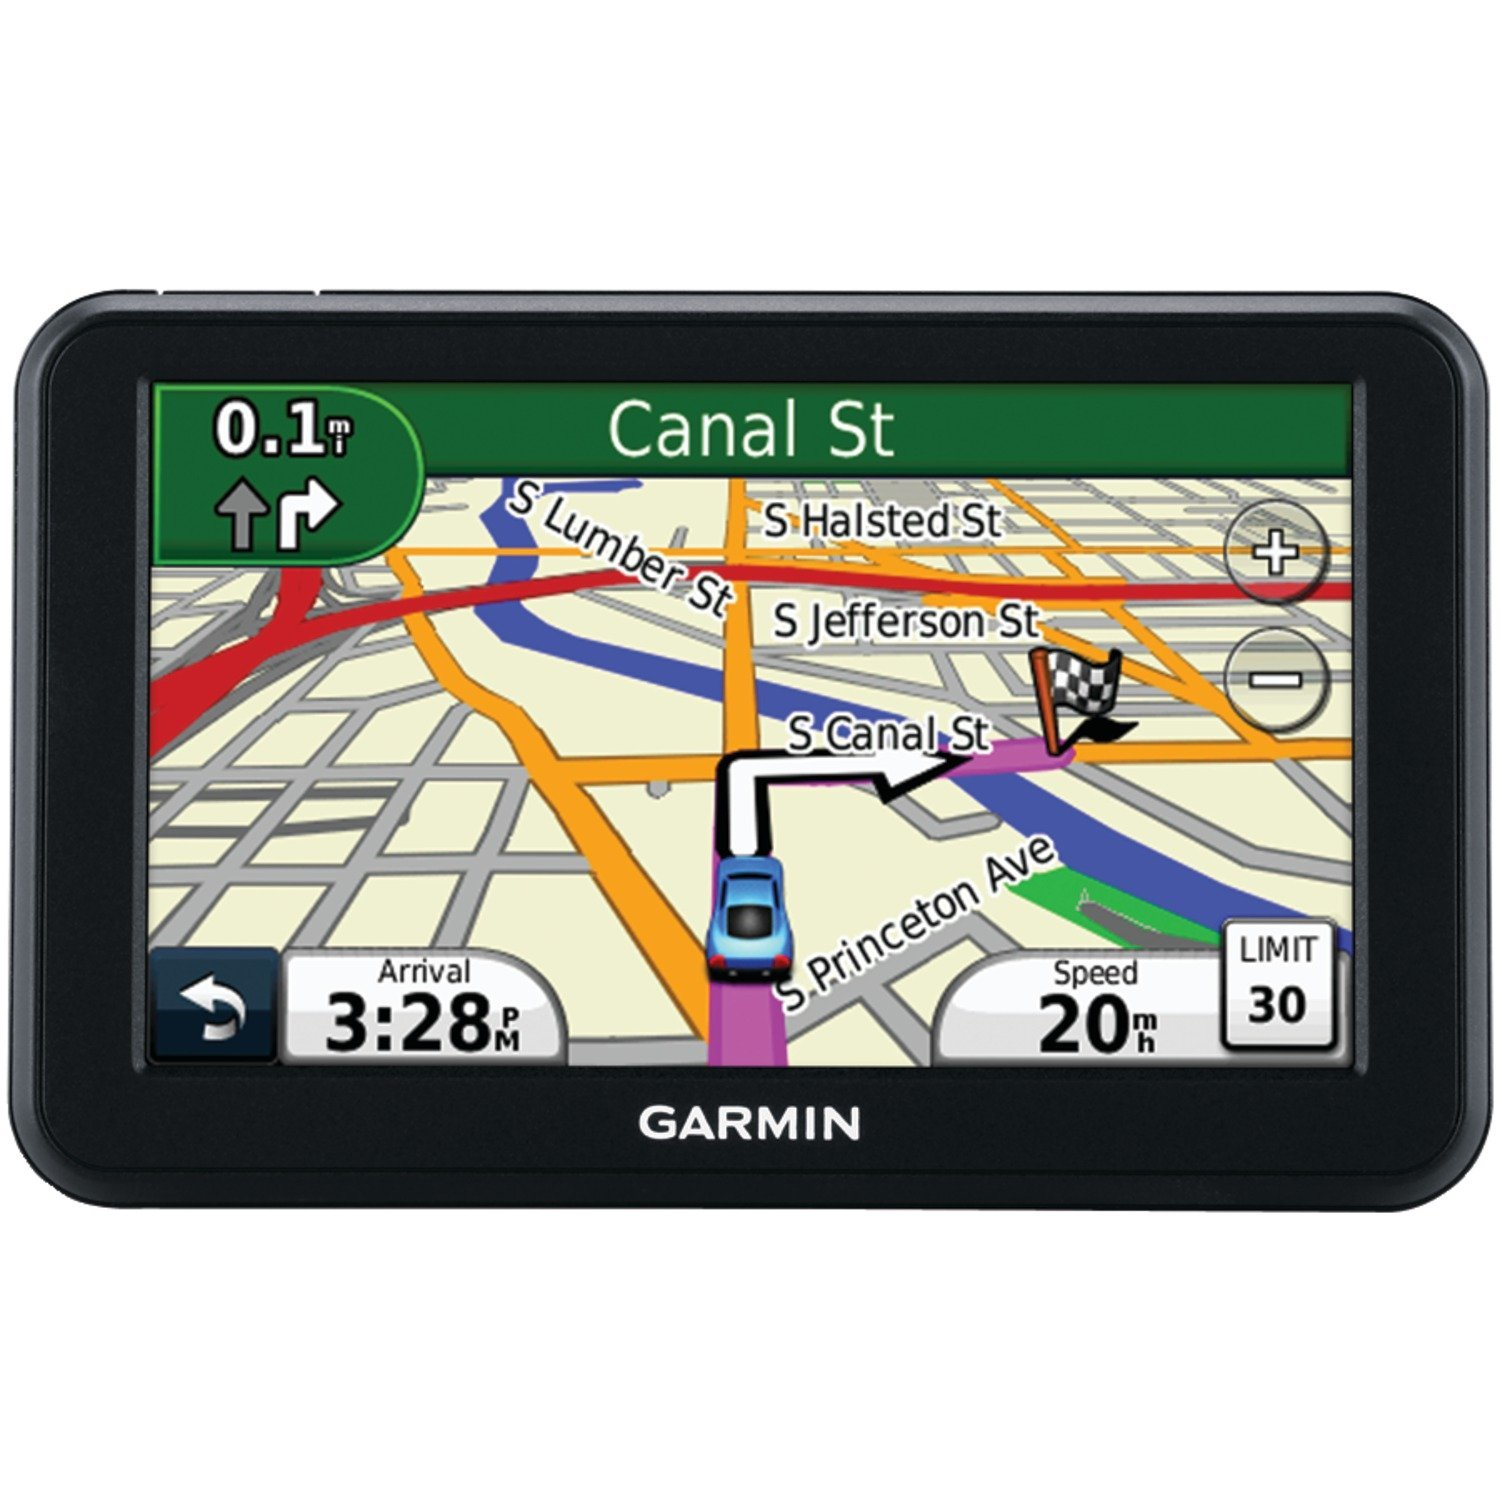 Garmin Gps Navigation : Best gps for truckers truck driver buyer guide